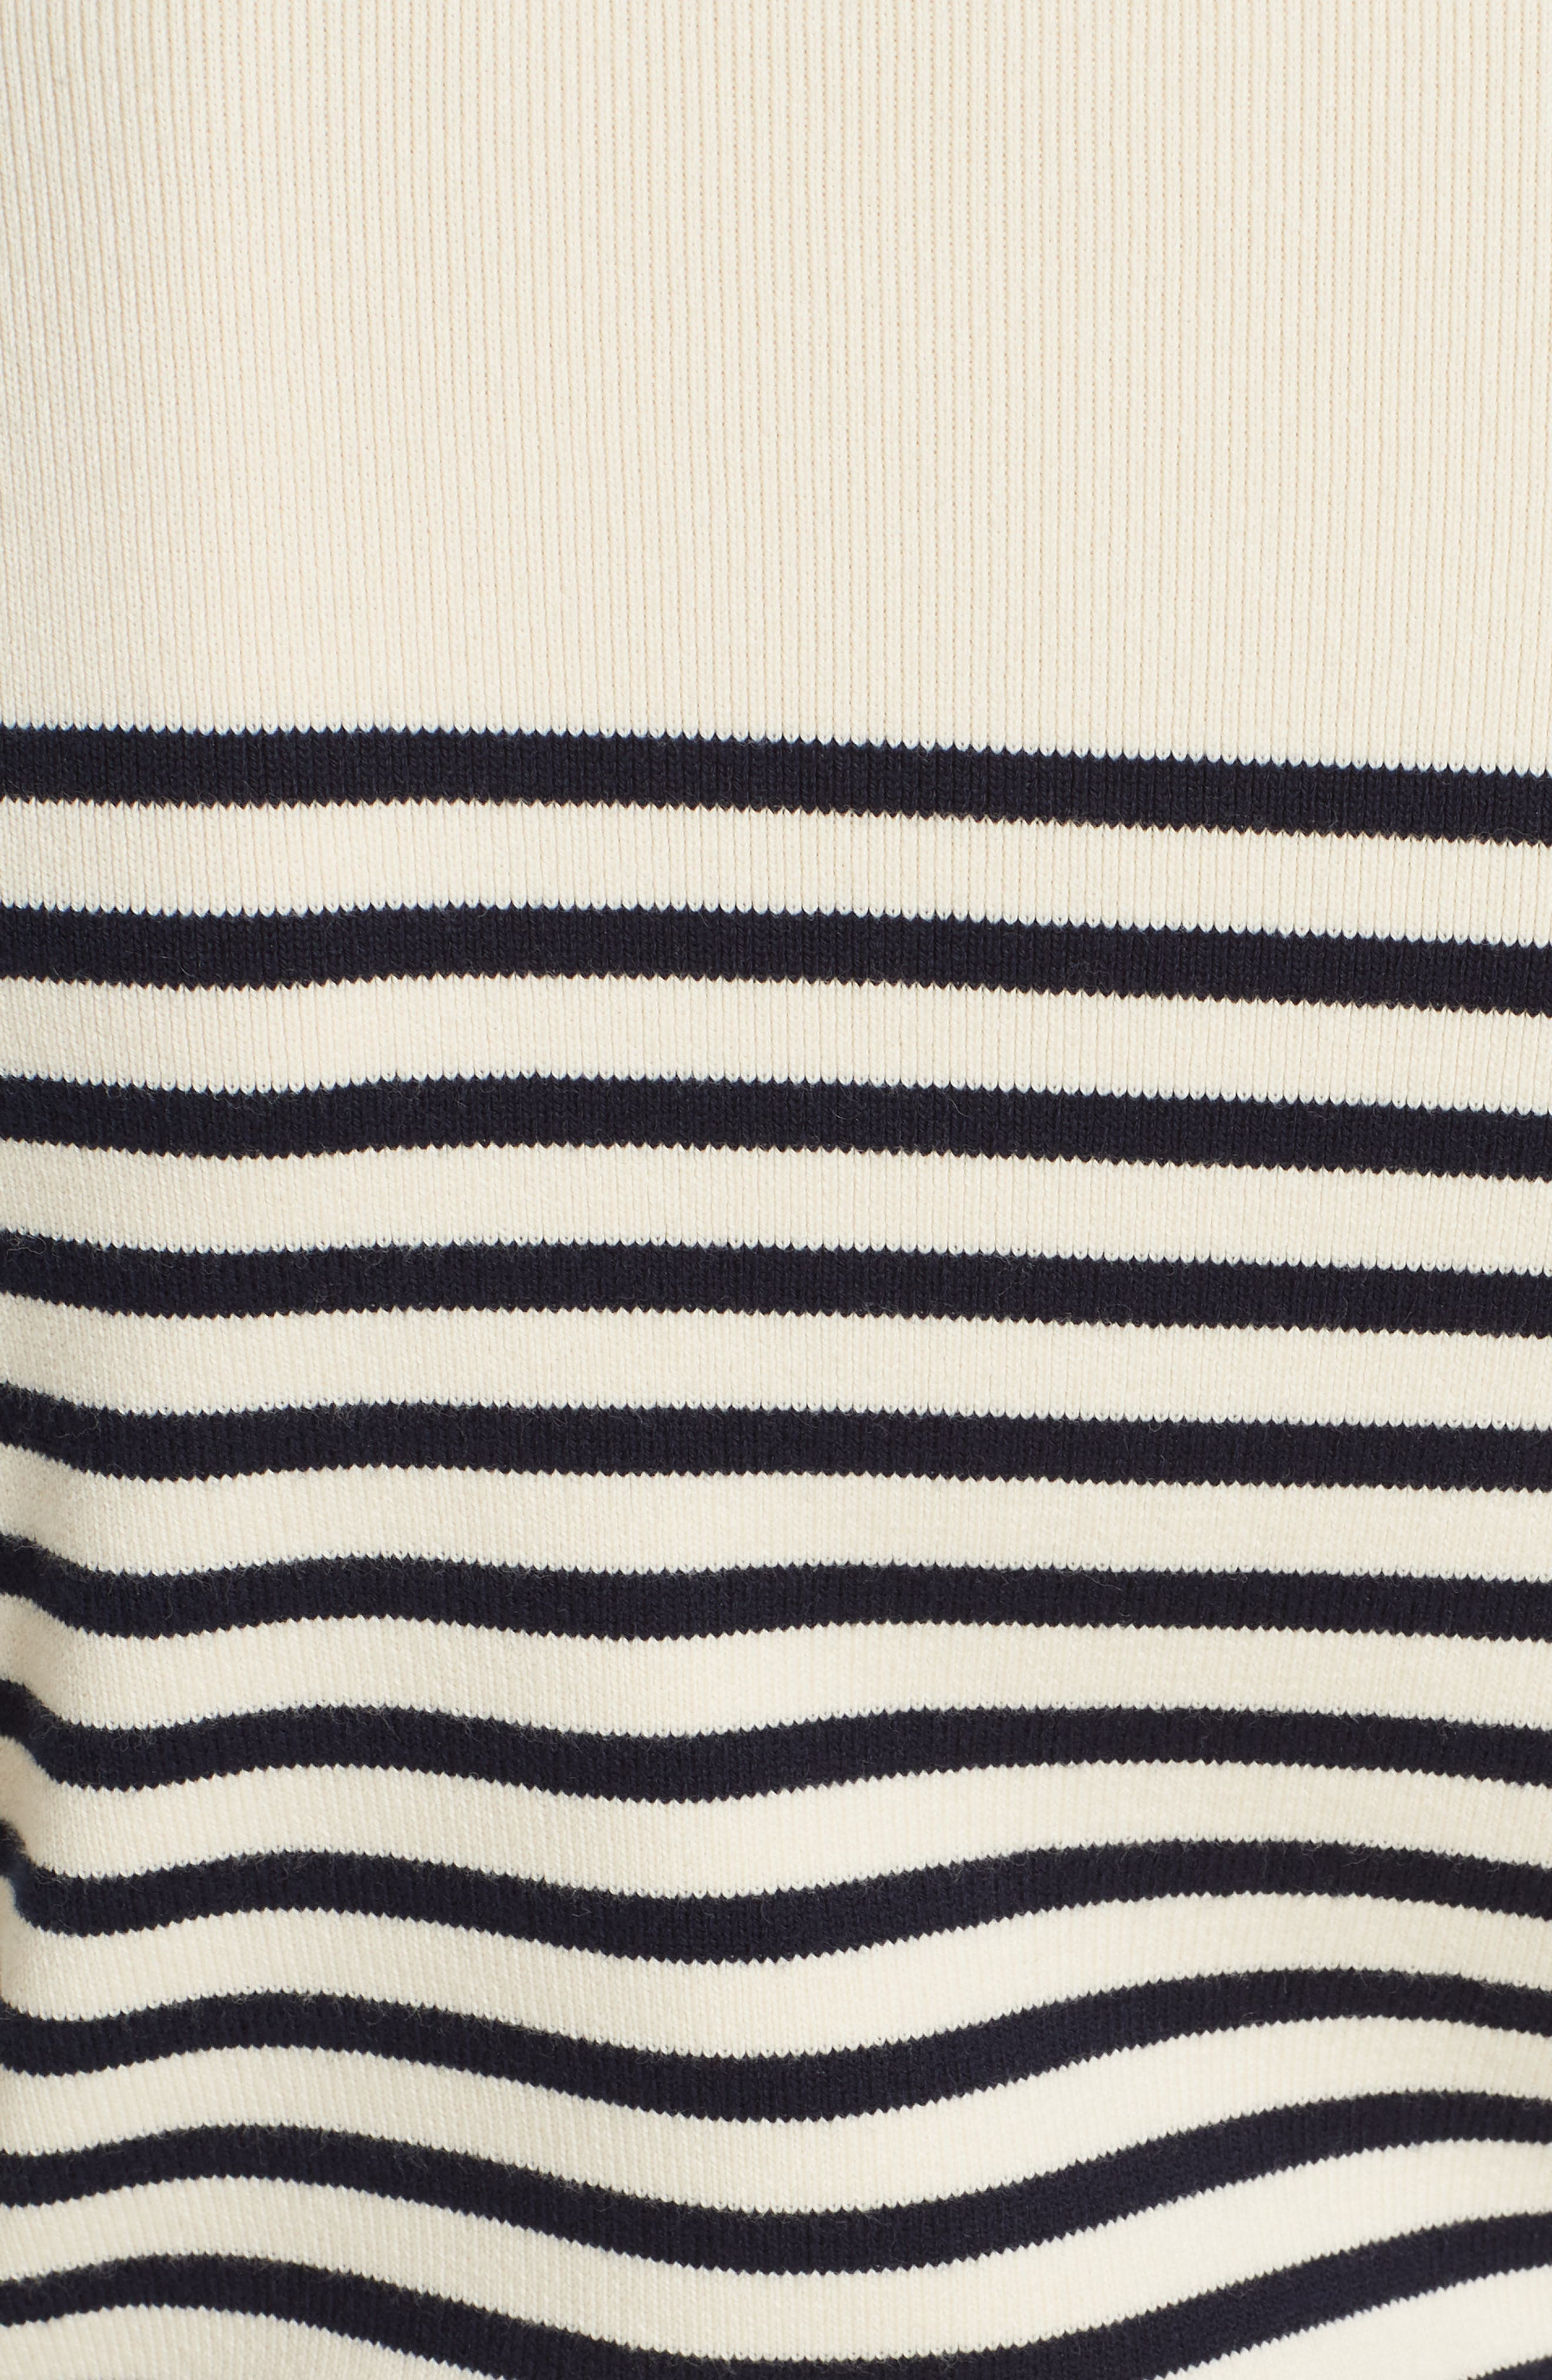 Classique Stripe Sweater,                             Alternate thumbnail 5, color,                             CREAM/ NAVY STRIPES